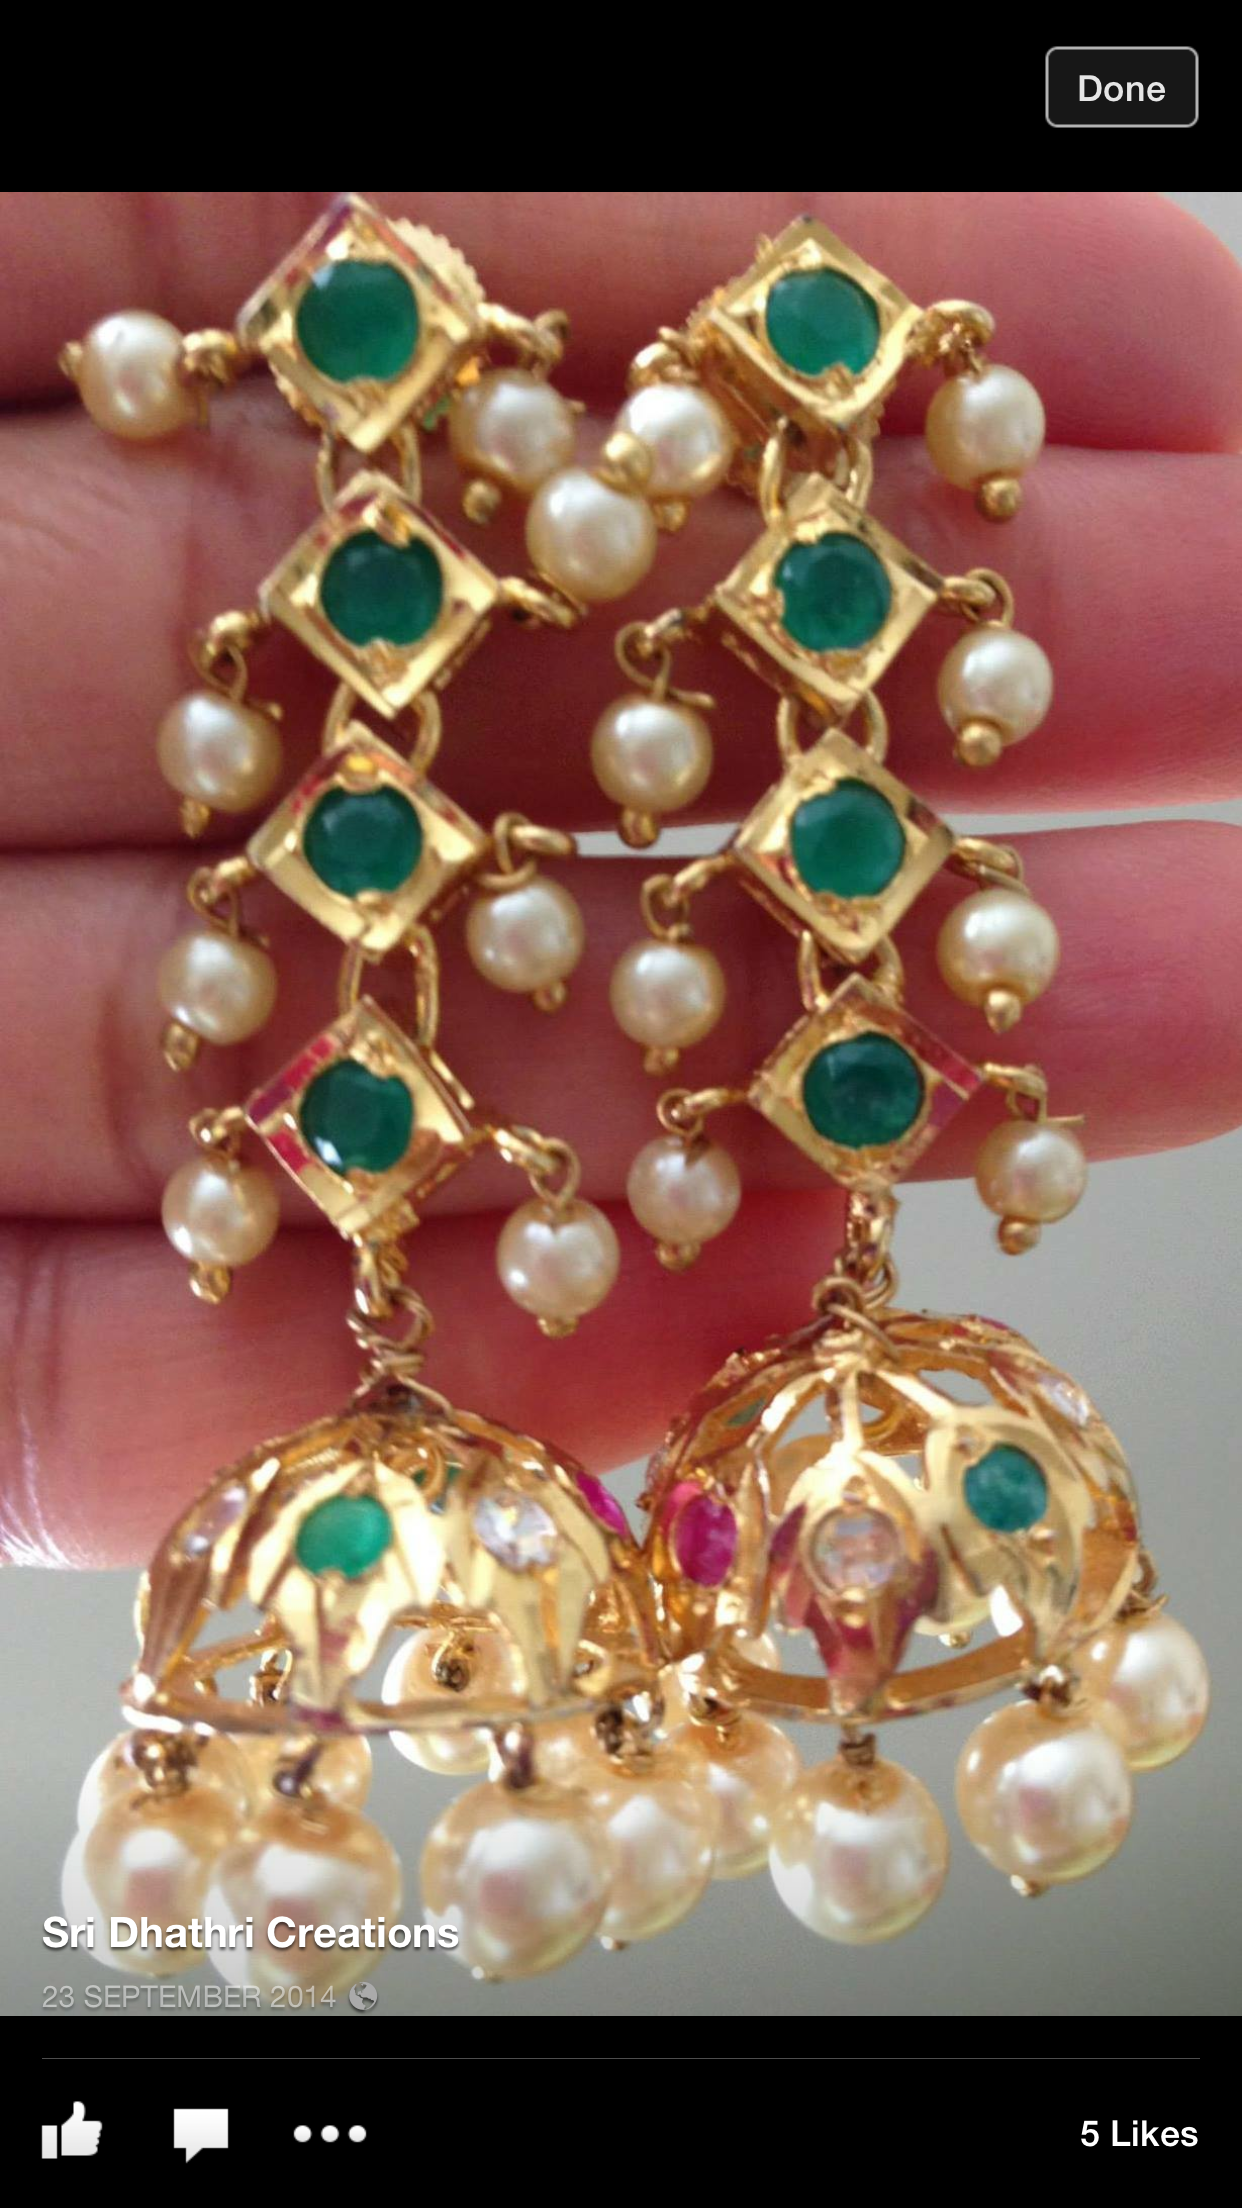 Ggg Gold | ggg | Pinterest | Gold, Indian jewelry and Jewel